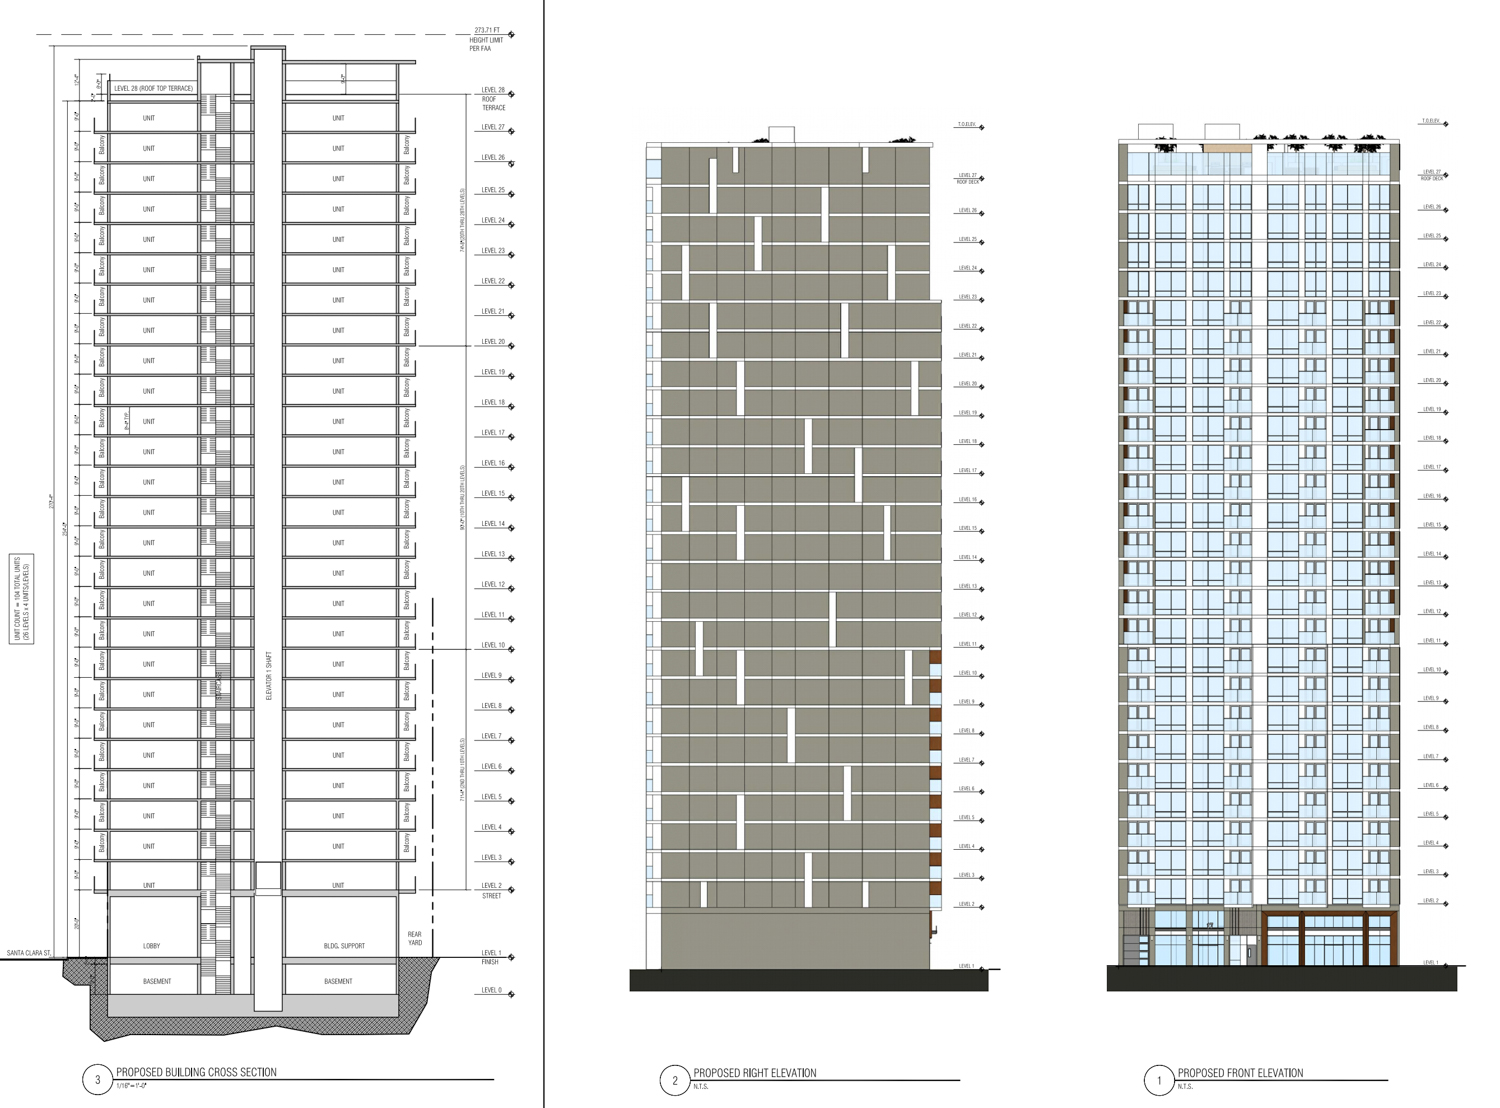 17 East Santa Clara Street vertical elevation, design by Anderson Architects